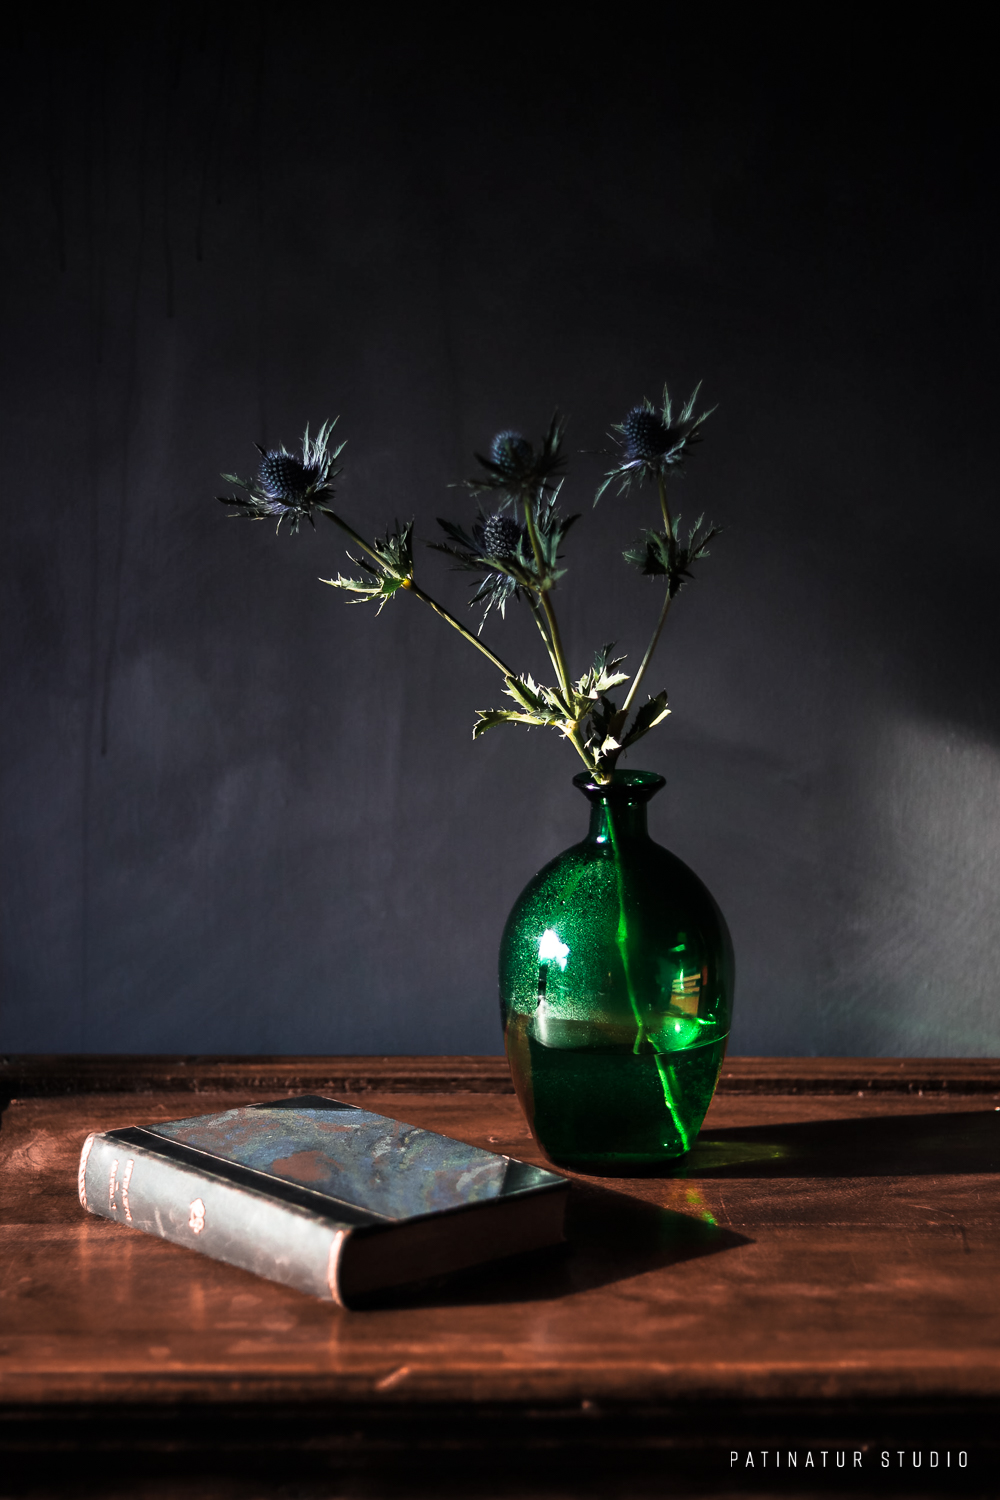 Photo Art | Dark and moody still life with objects in green and blue